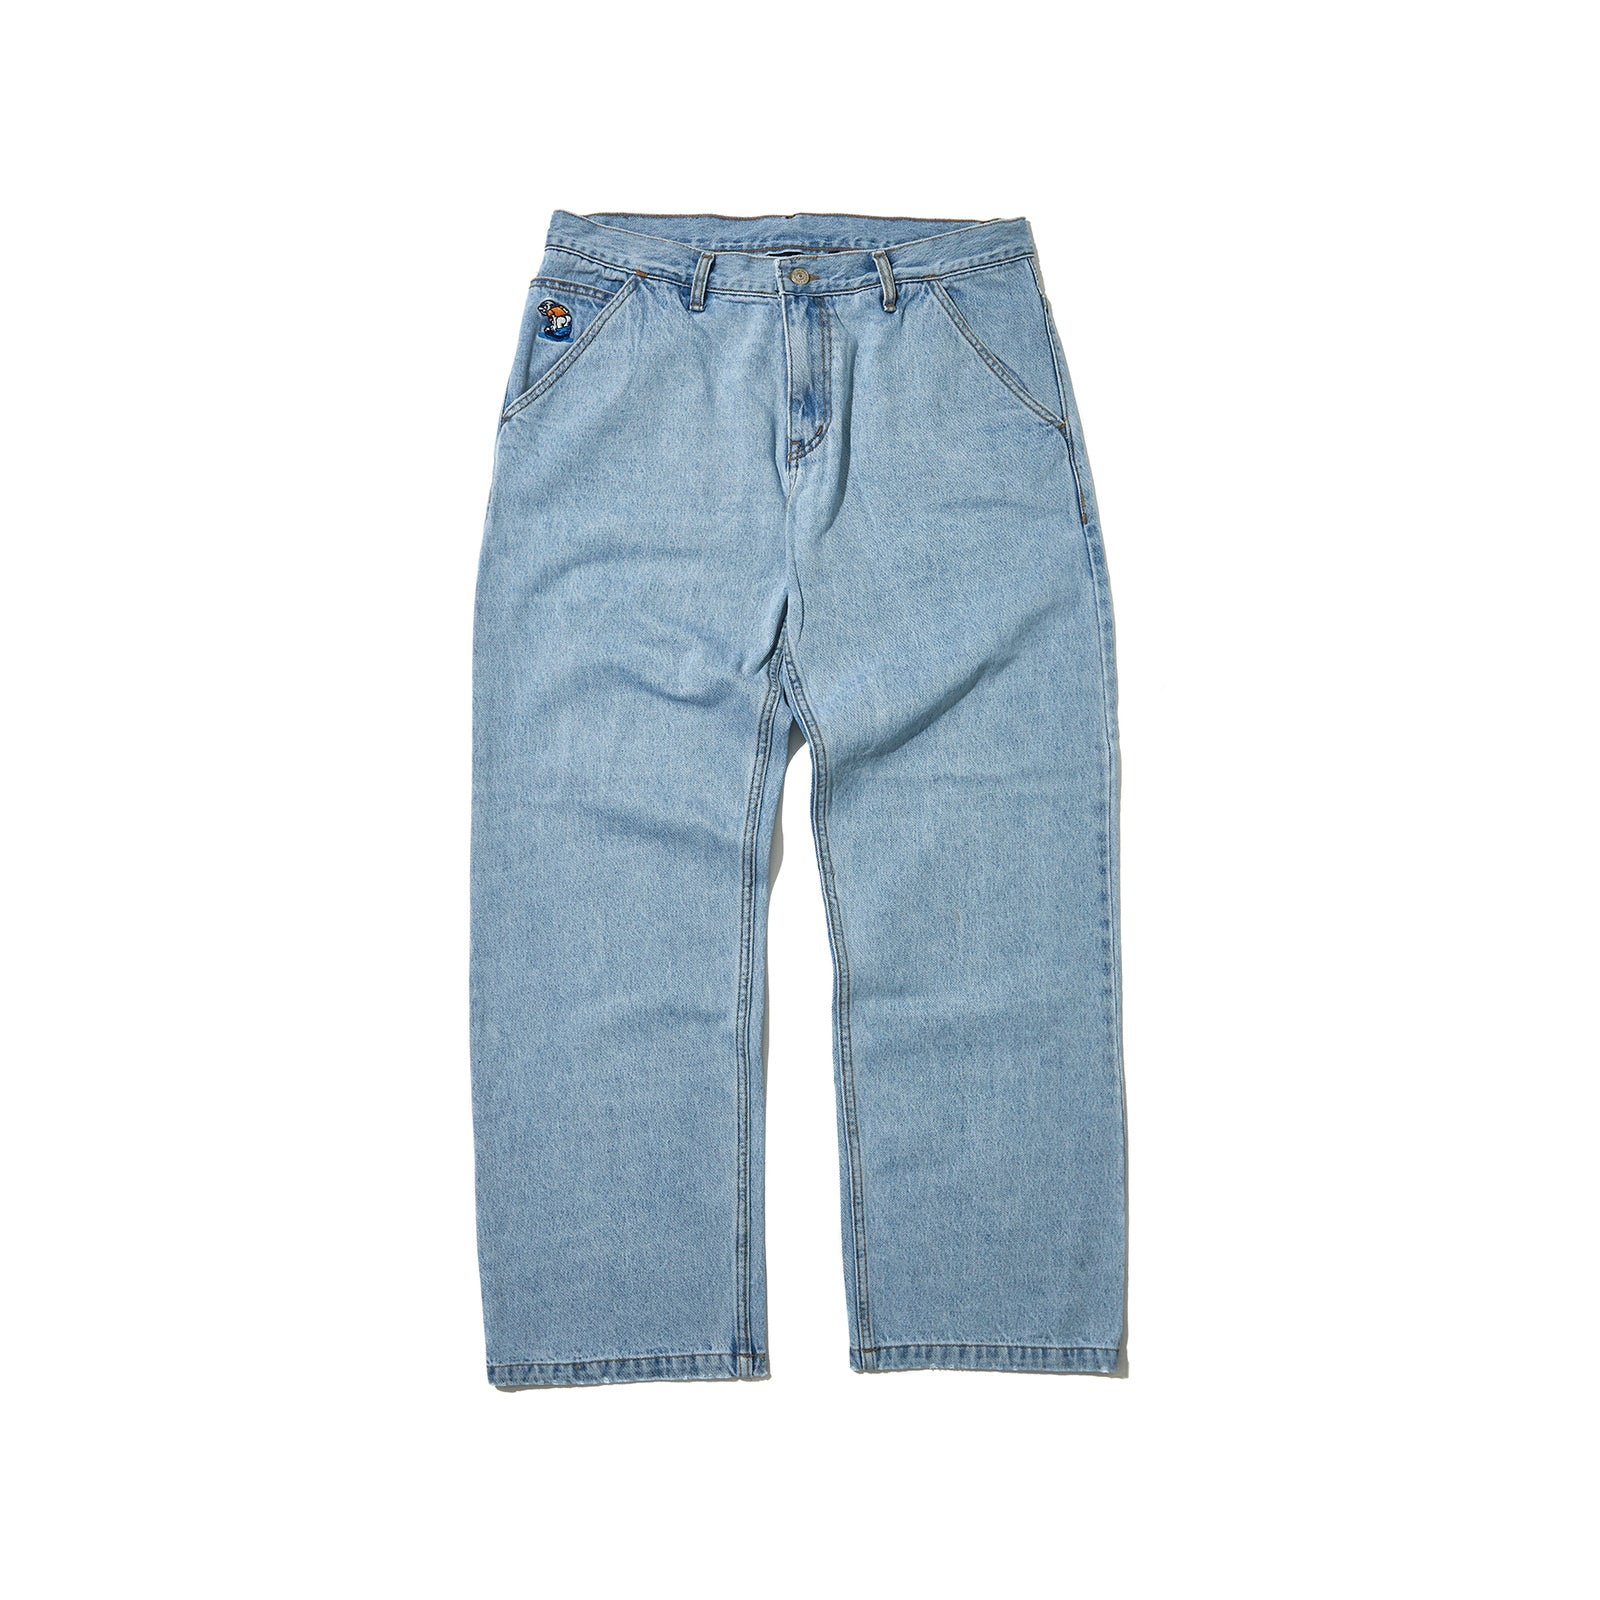 5-POCKET DENIM PANTS (DENIM)